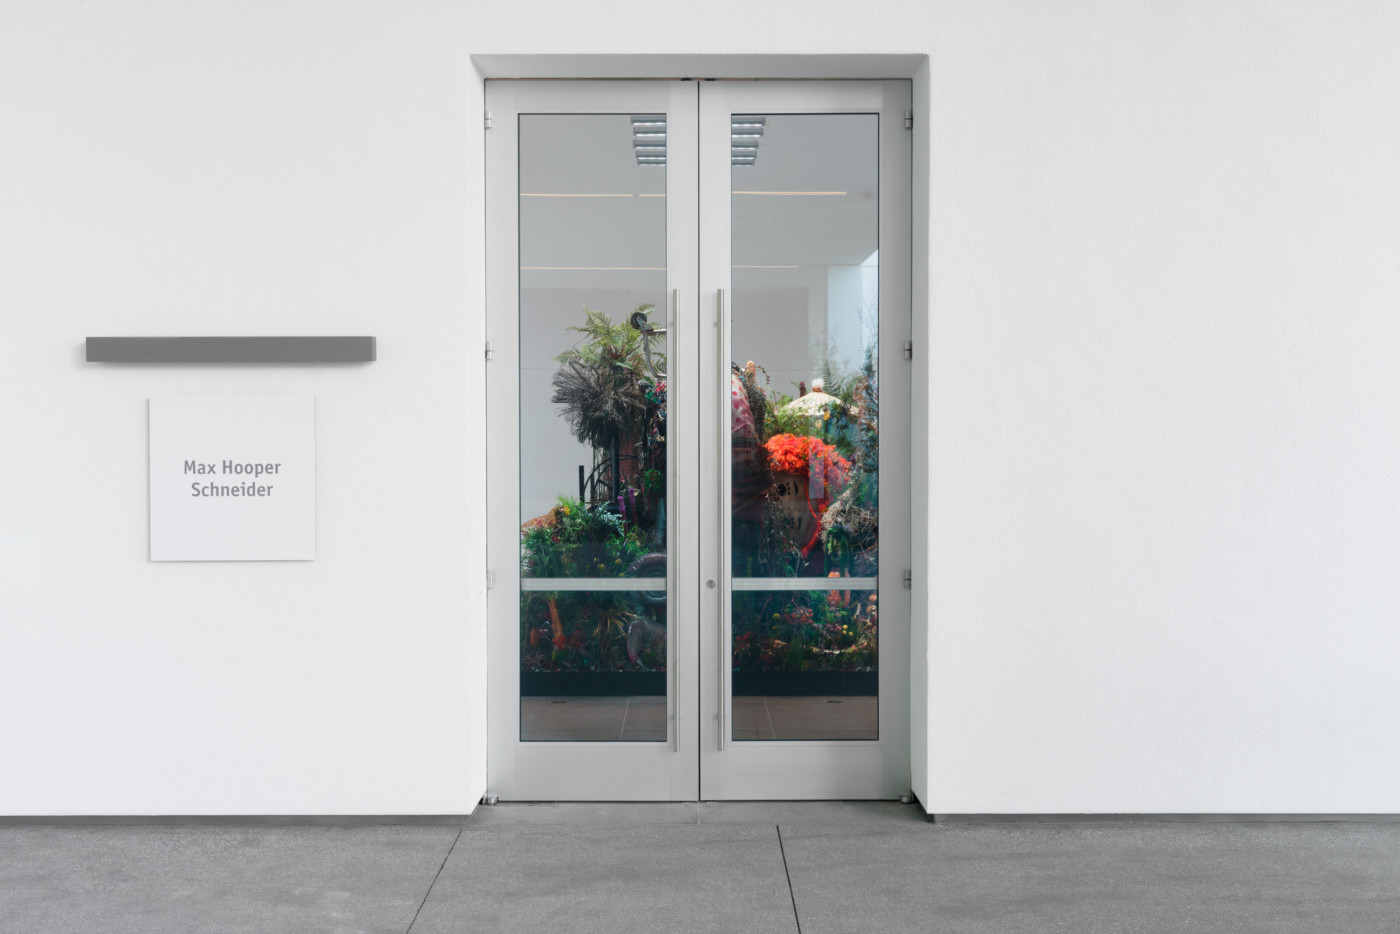 MAX HOOPER SCHNEIDER  Hammer Projects: Max Hooper Schneider , 2019, Hammer Museum, Los Angeles, installation view - High Art Gallery Paris